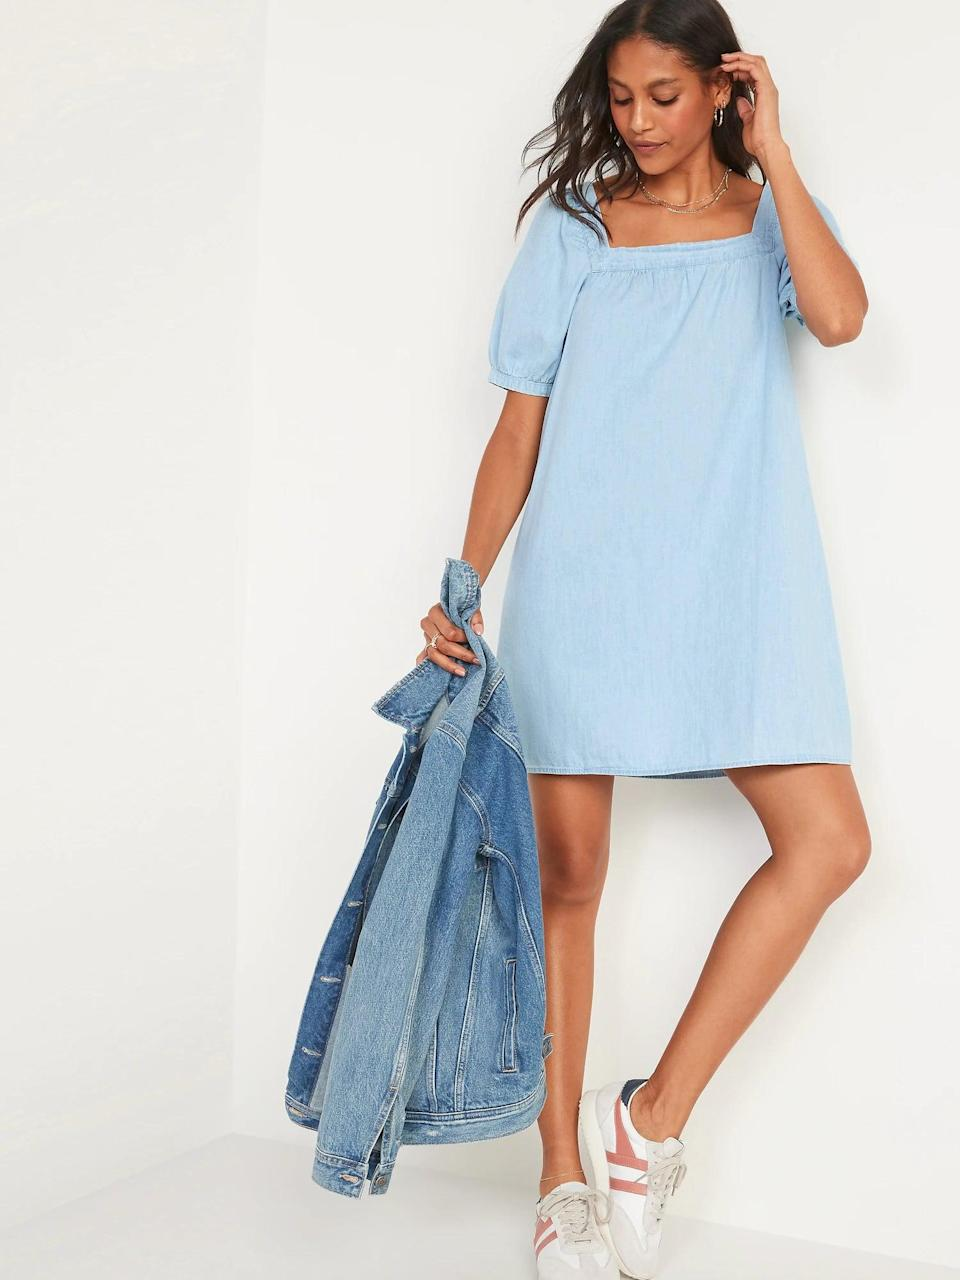 <p>The <span>Puff-Sleeve Light-Wash Jean Mini Swing Dress for Women</span> ($45) also pairs perfectly with a denim jacket - a major win!</p>